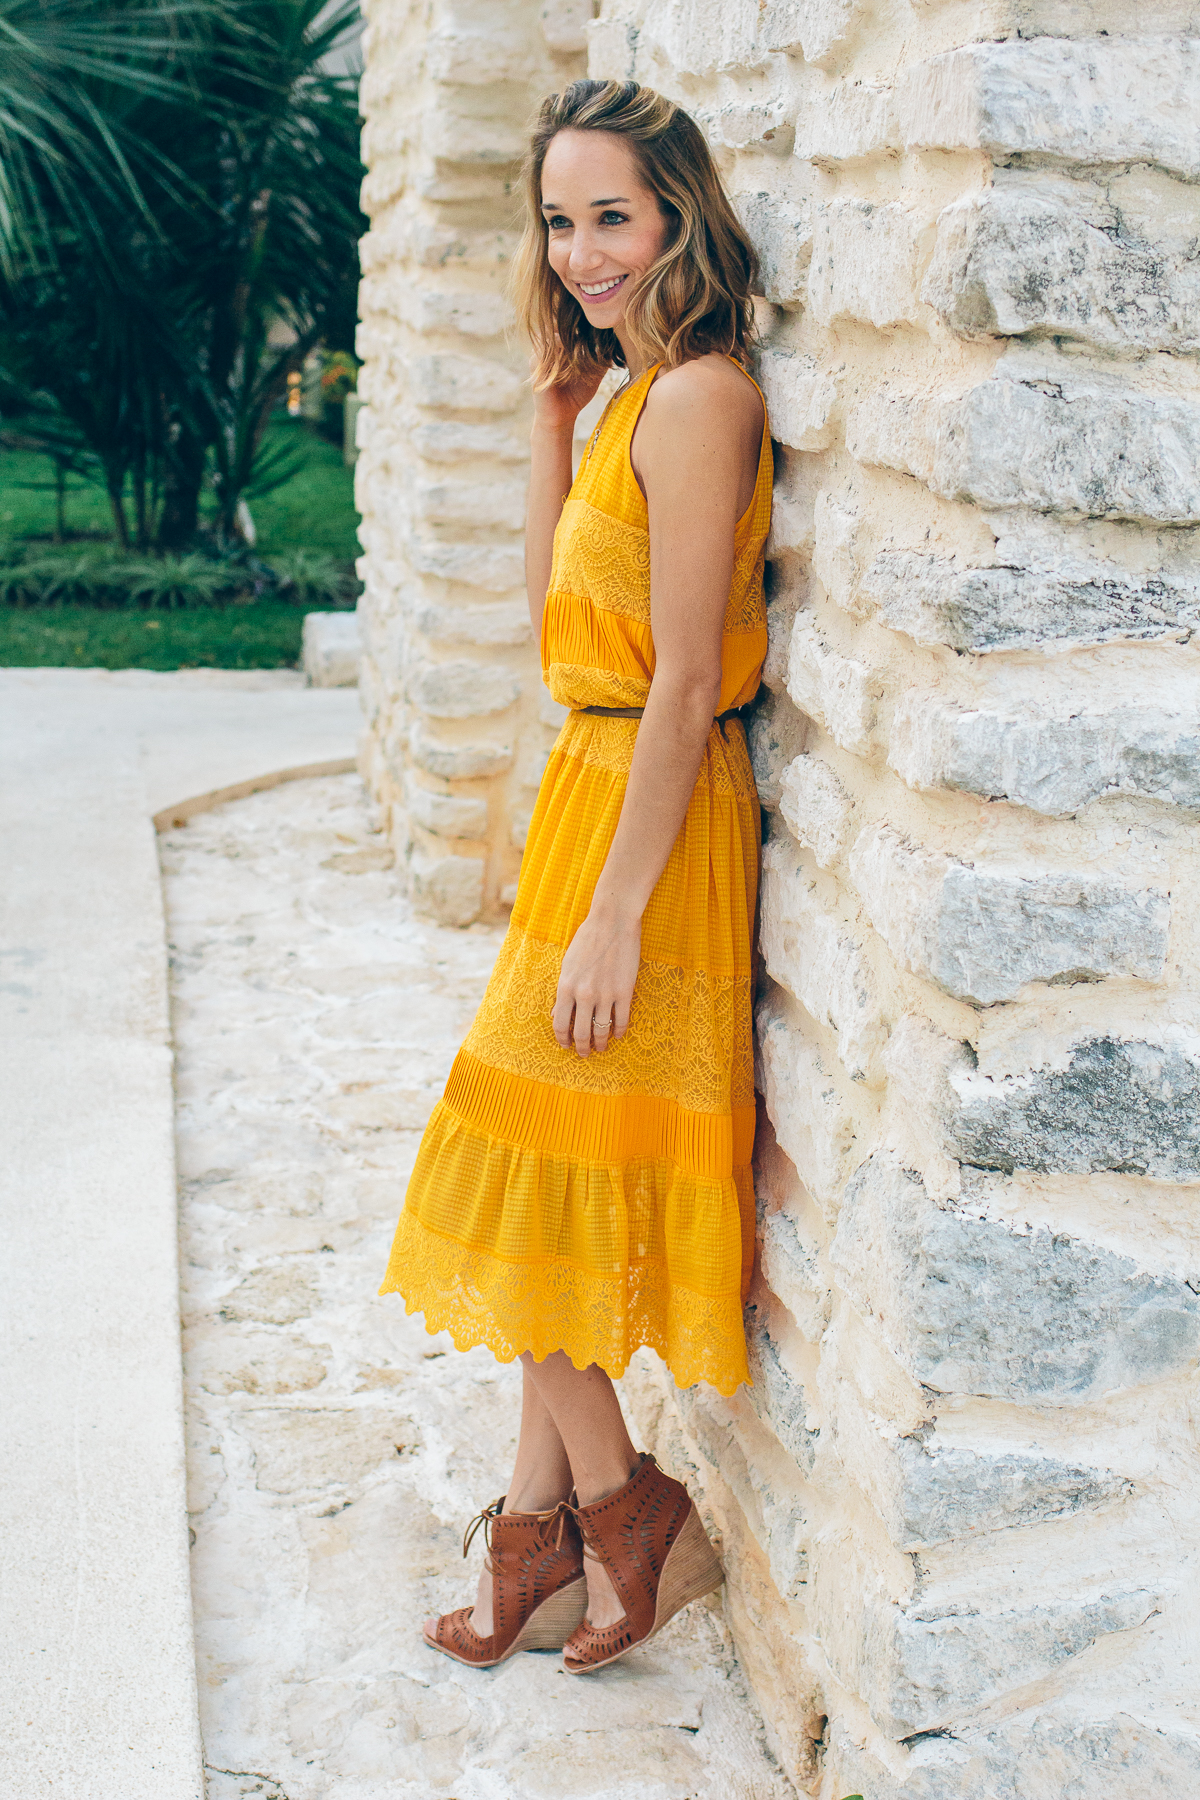 villanelle lace dress, anthropologie lace dress, yellow dress, spring outfit, blogger outfit, fashion blogger outfit —via @TheFoxandShe